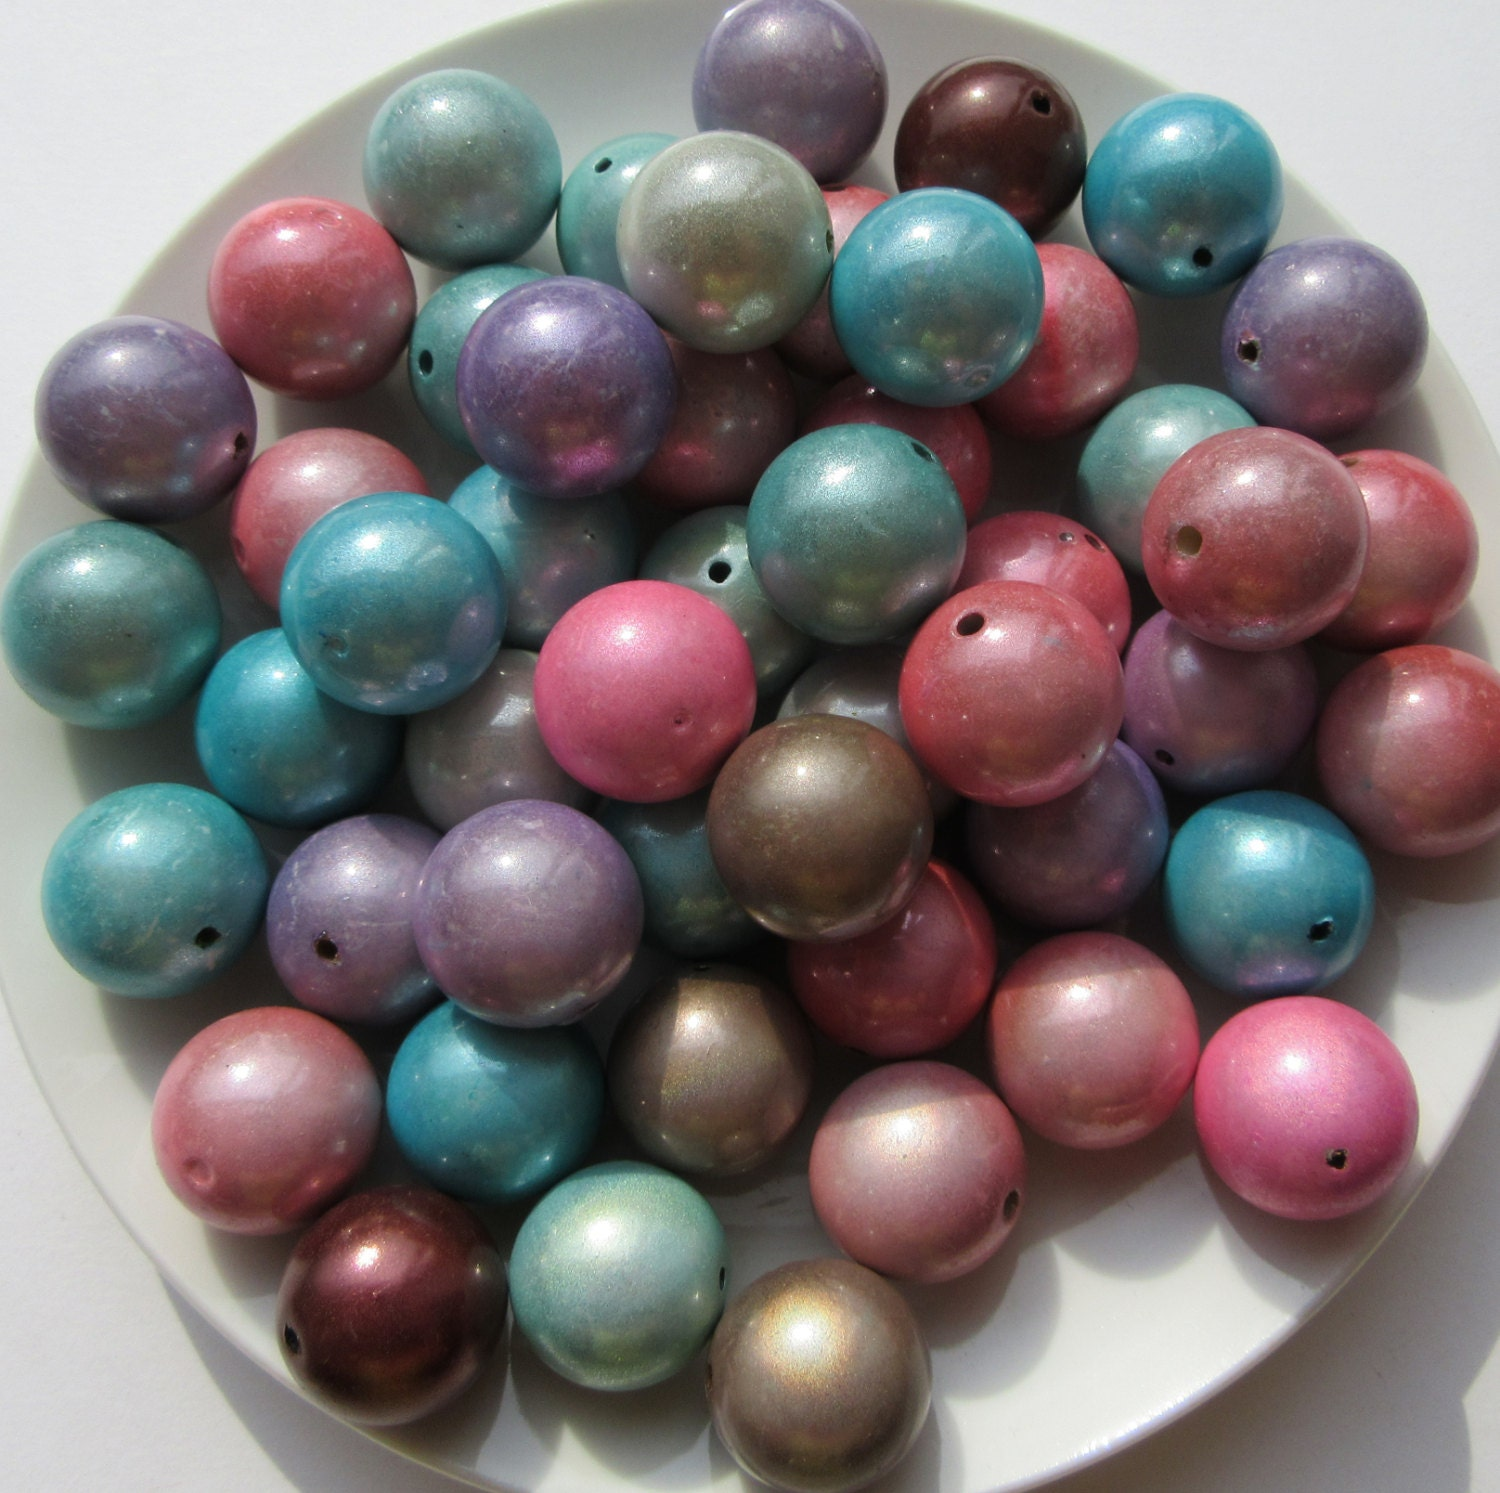 20mm Bead Beads: 10 Large 20mm Round Bubble Gum Beads Miracle Beads